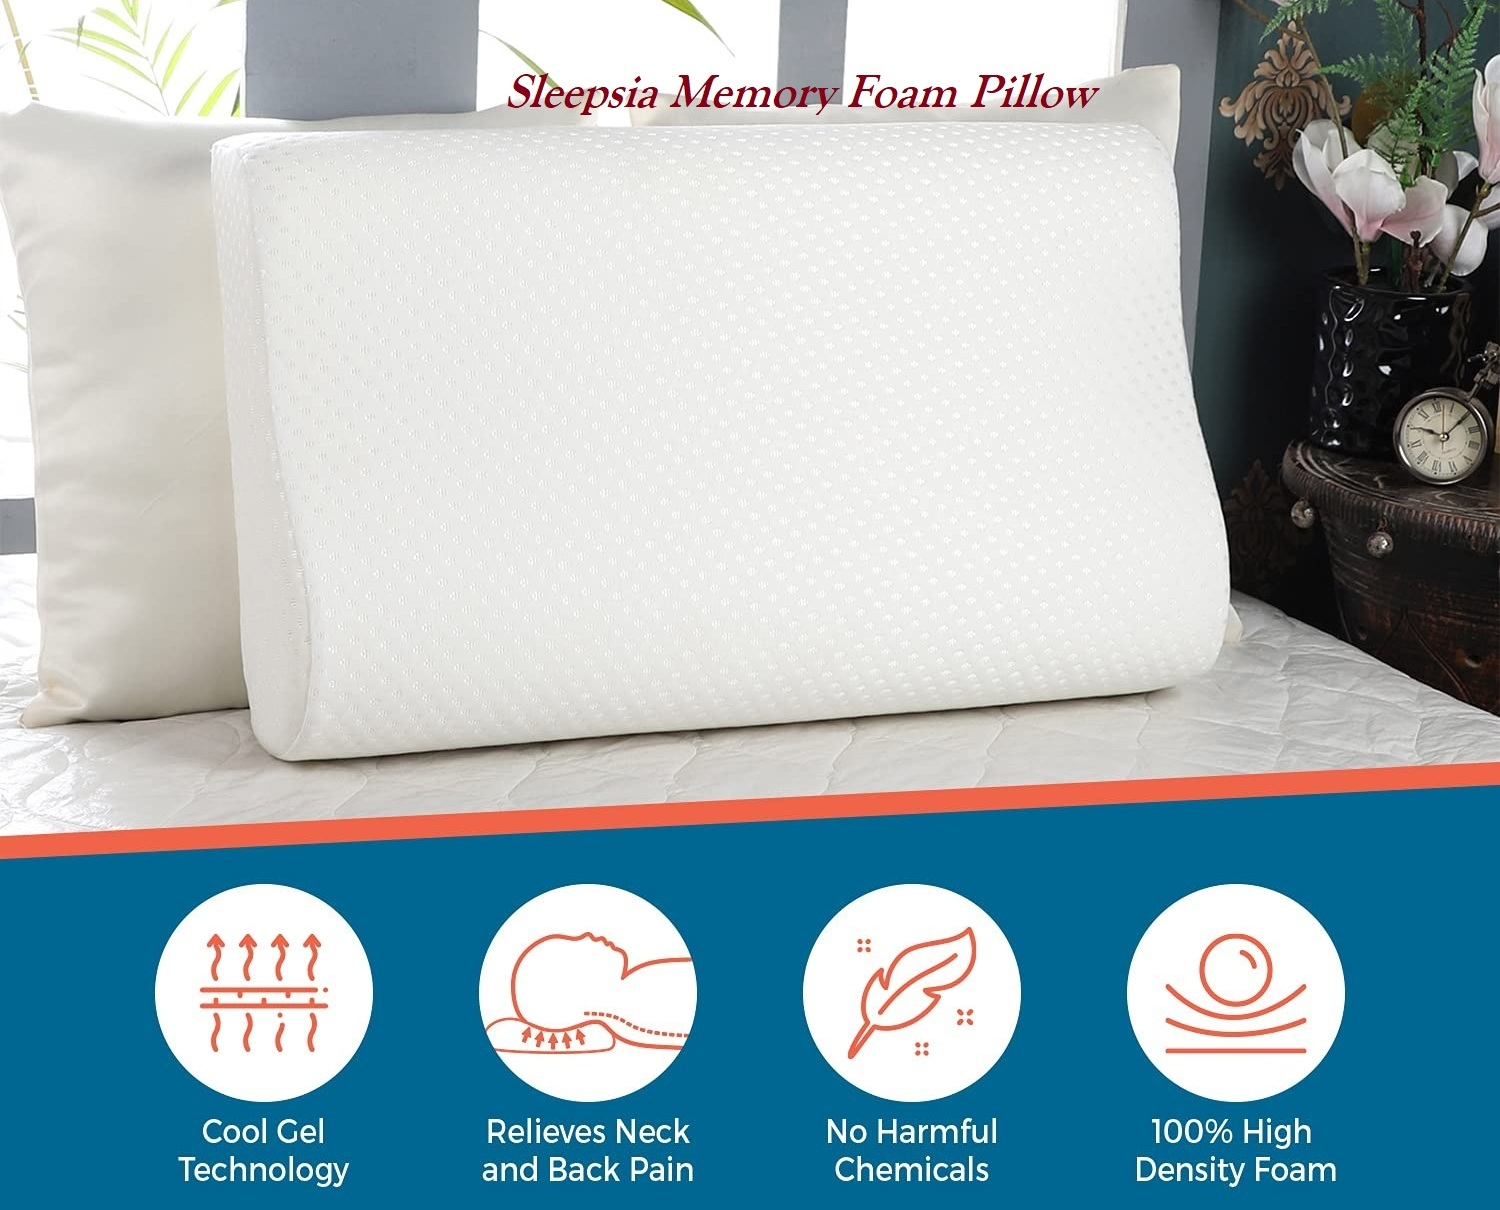 What Is The Best Memory Foam Pillow for Cervical Neck Pain?